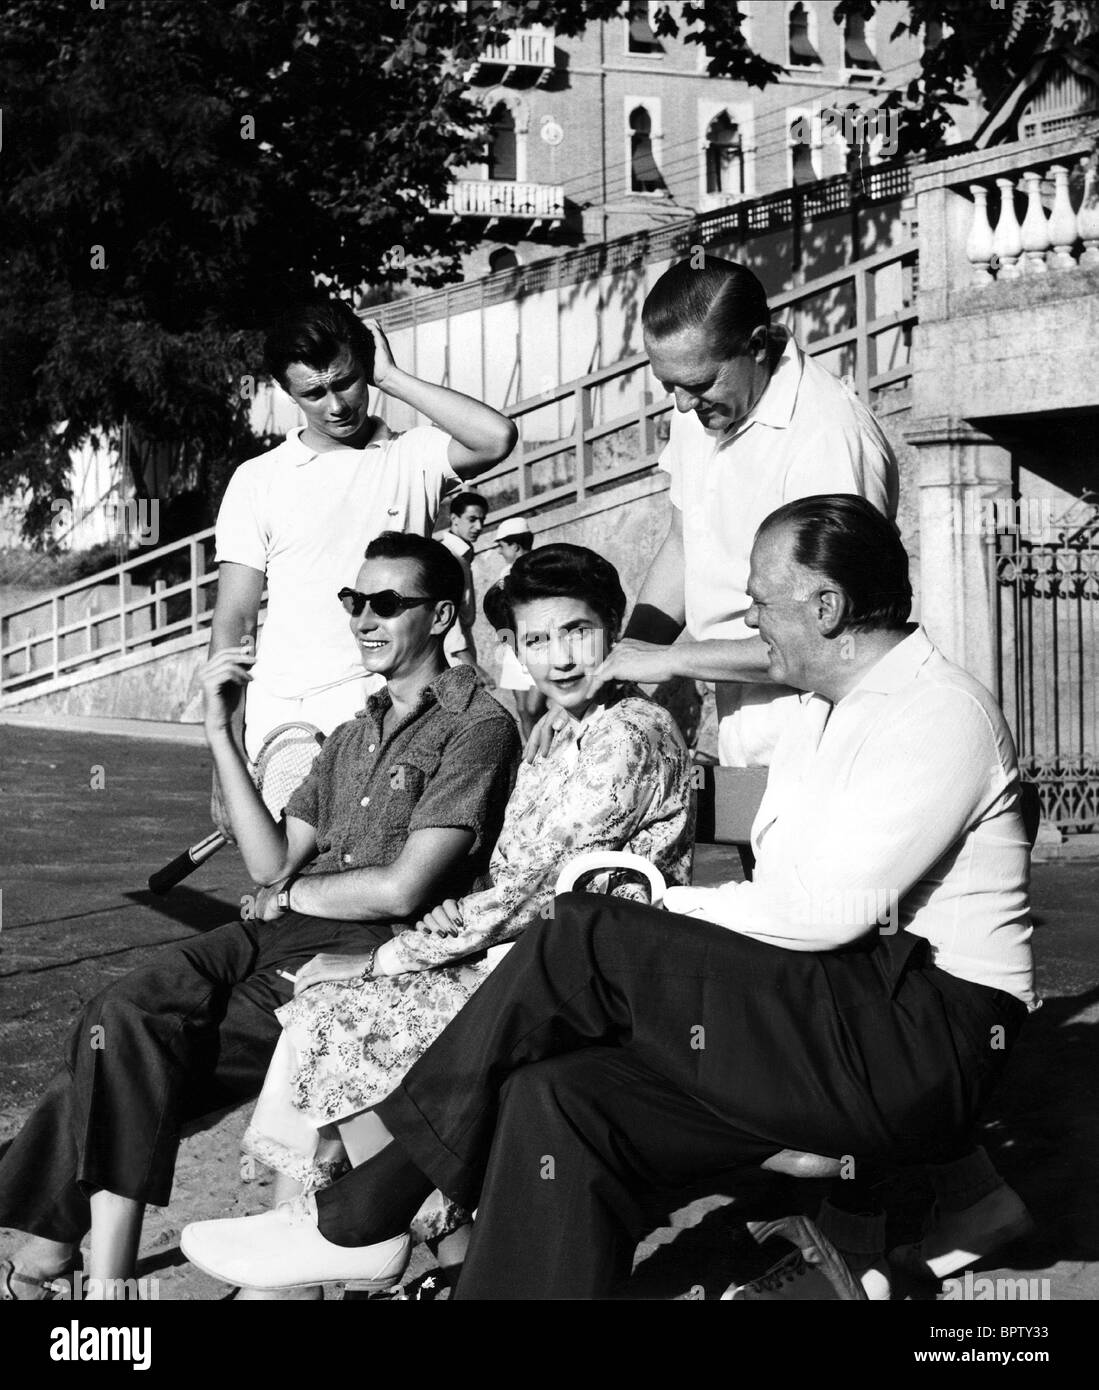 BARBARA HUTTON & GOTTFRIED VON CRAMM HEIRESS WITH HUSBAND 1957